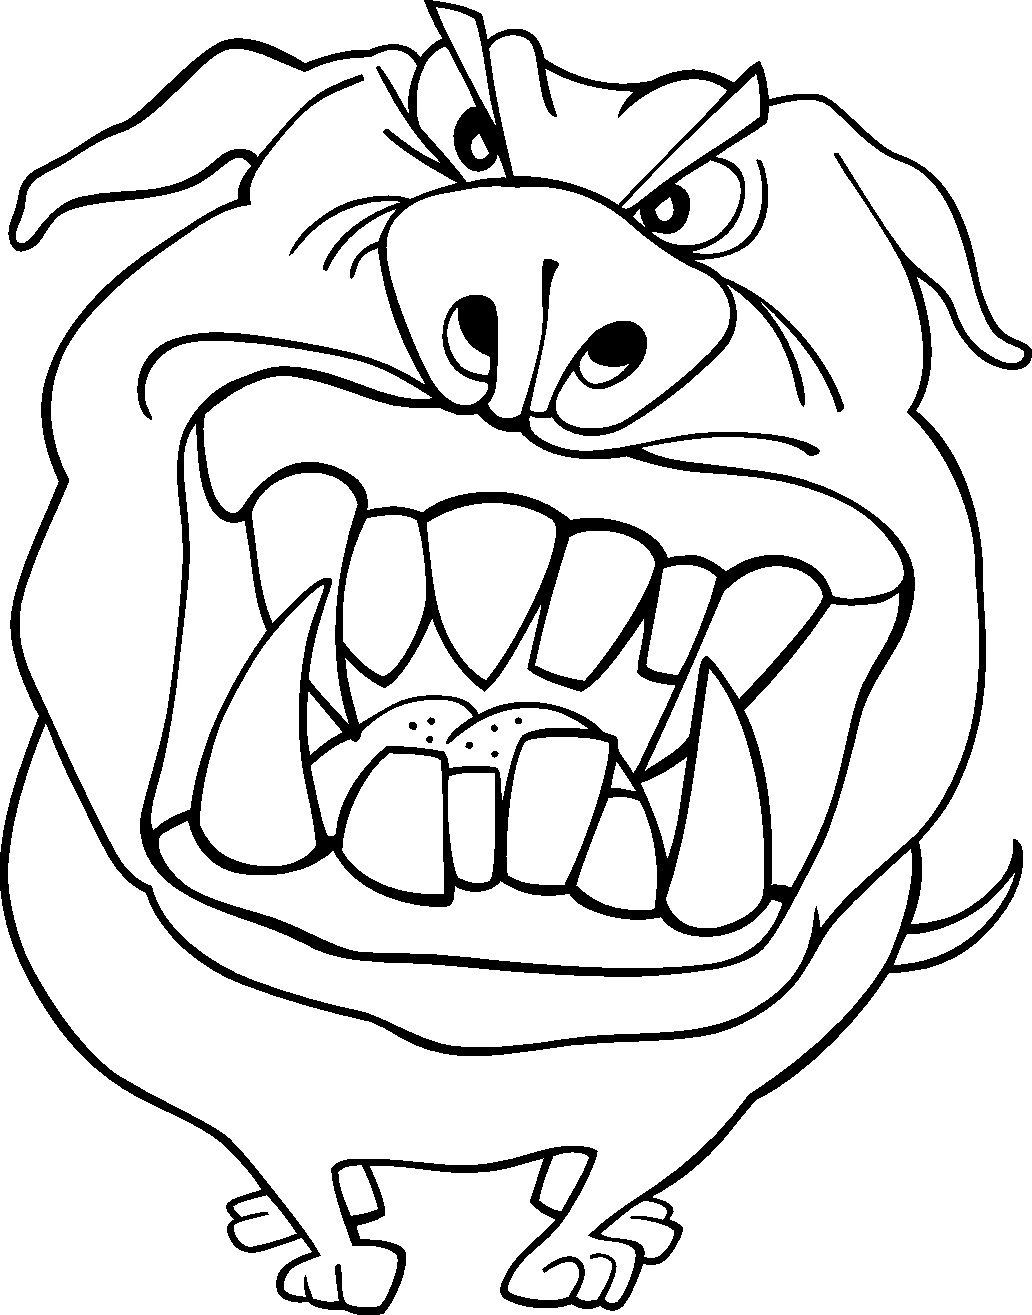 Free Printable Funny Coloring Pages For Kids Funny Adults Cartoon Image